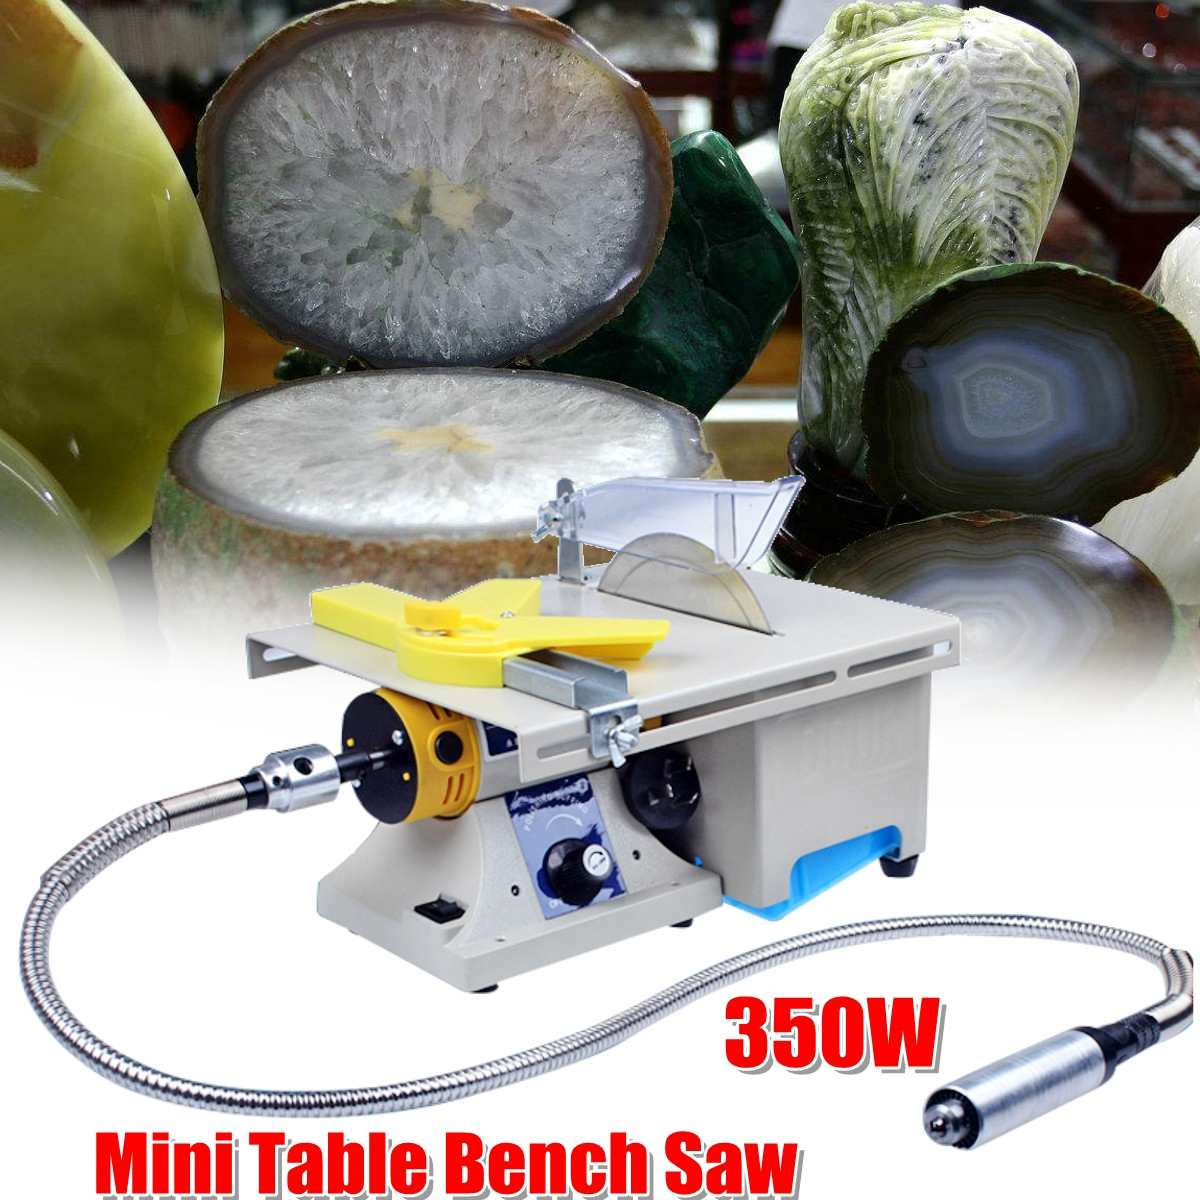 350W Mini Table B Ench Saw Electric Grinding Engraving Machine Jade Wood Stone Polishing Router For Bodhi Ivory Carving Polisher